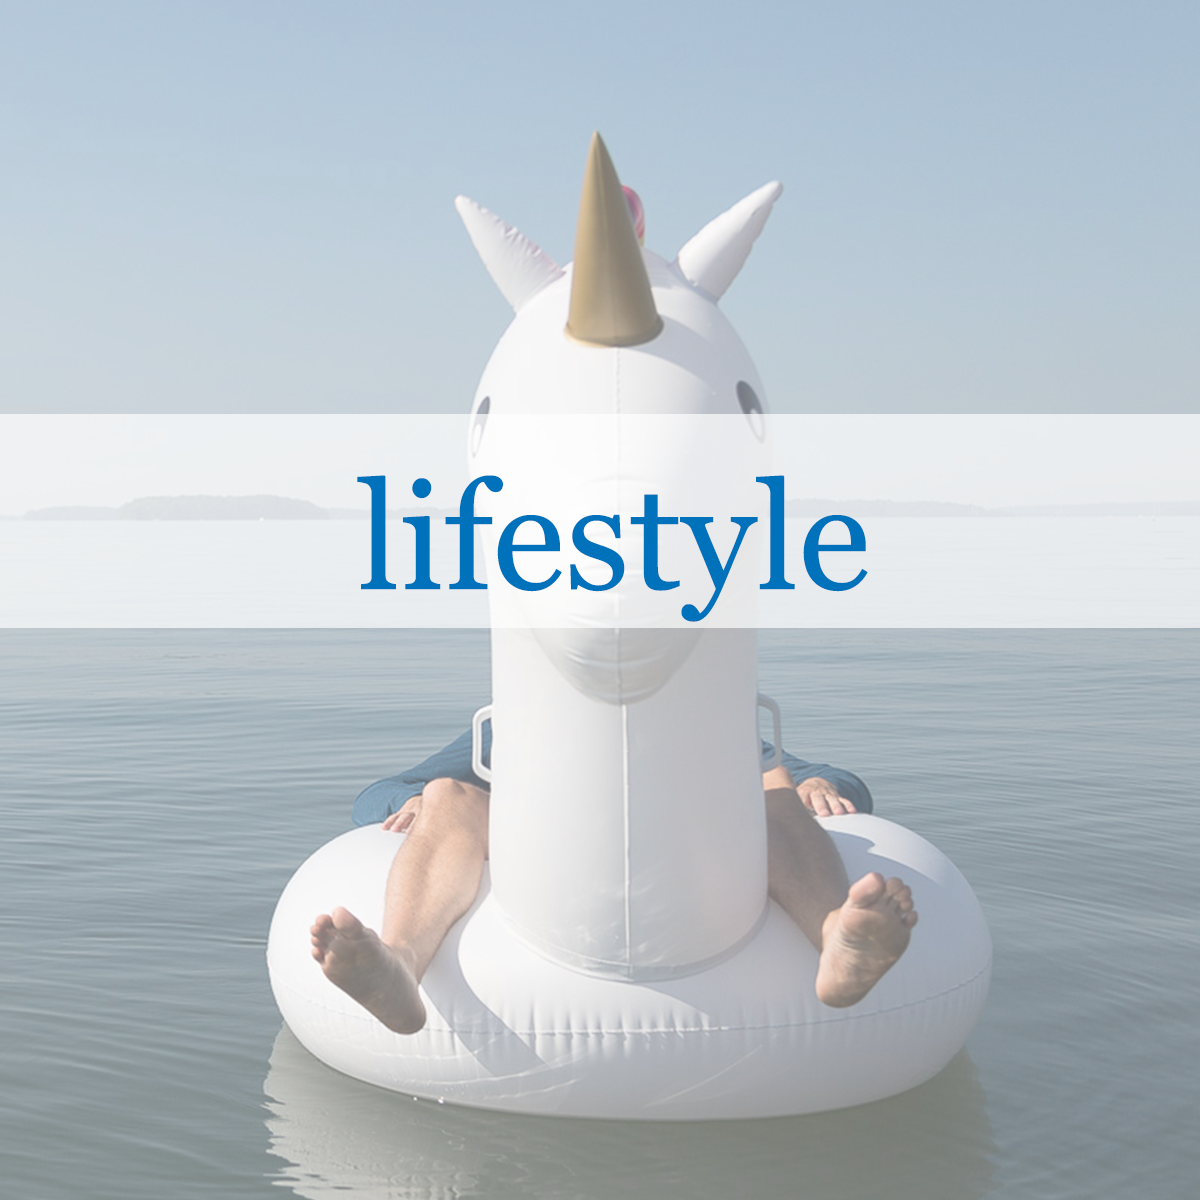 Welcome-Lifestyle-Photo-Transparent.png